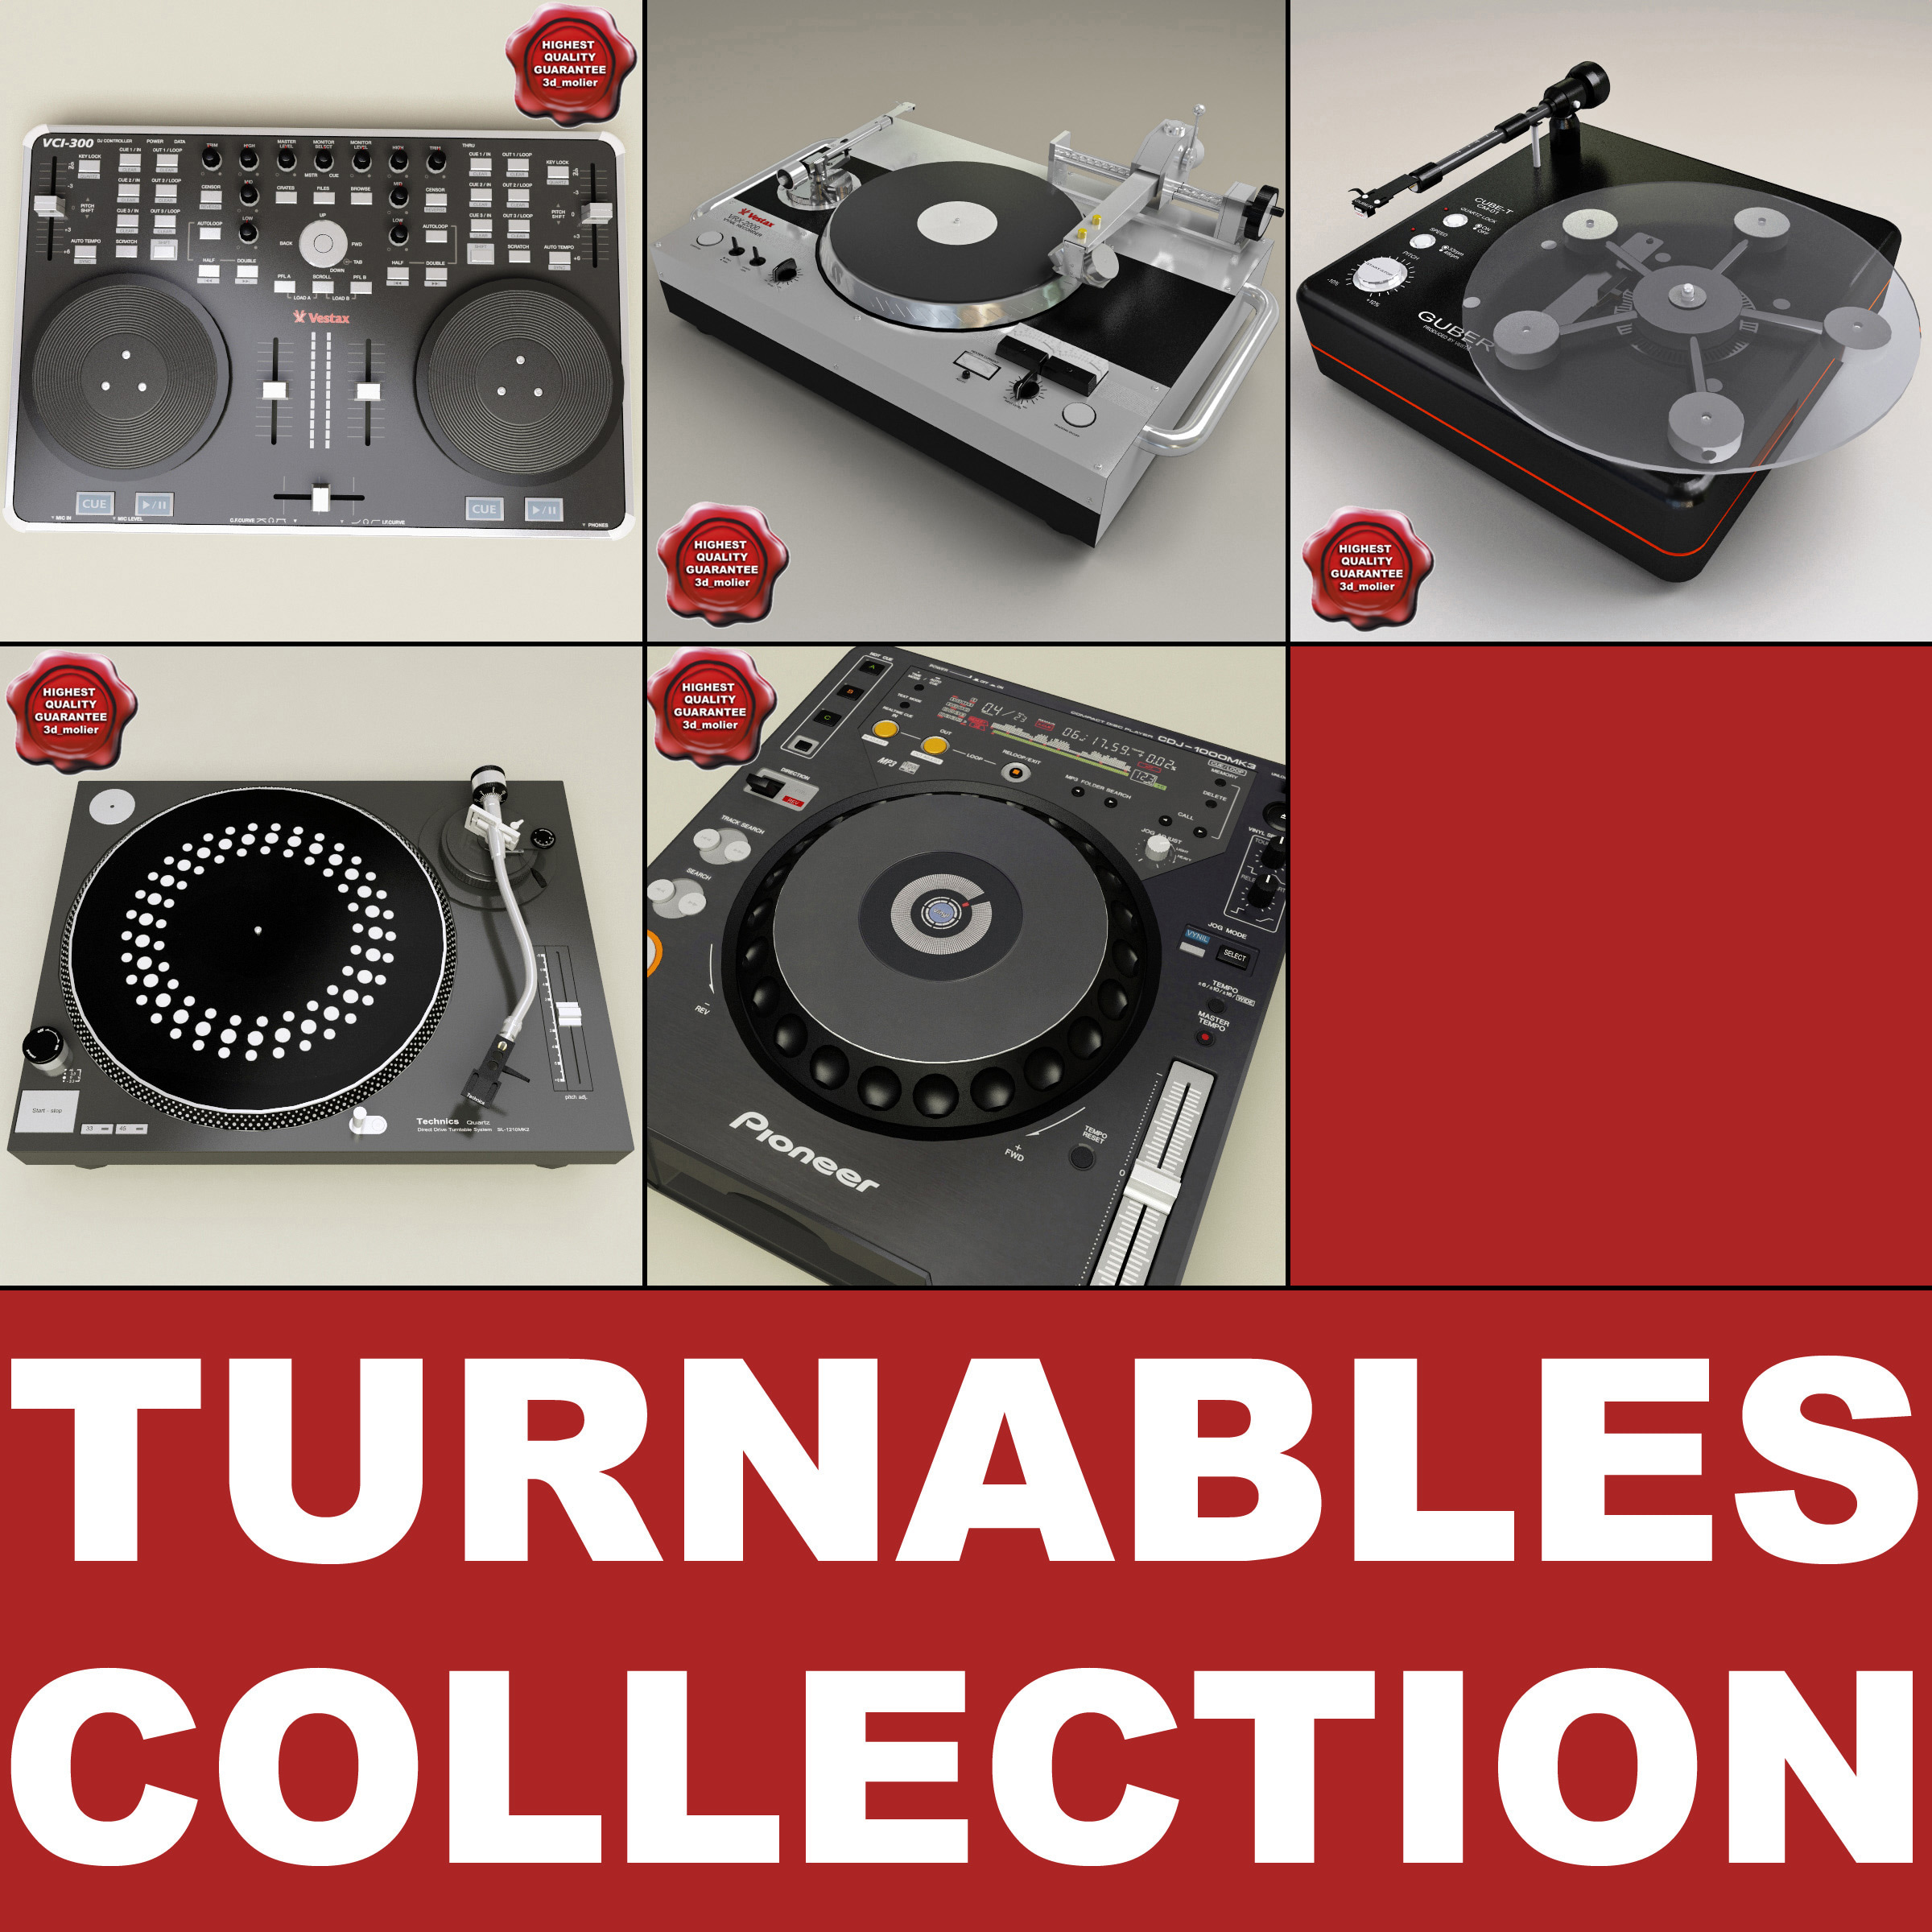 Turntables_Collection_00.jpg